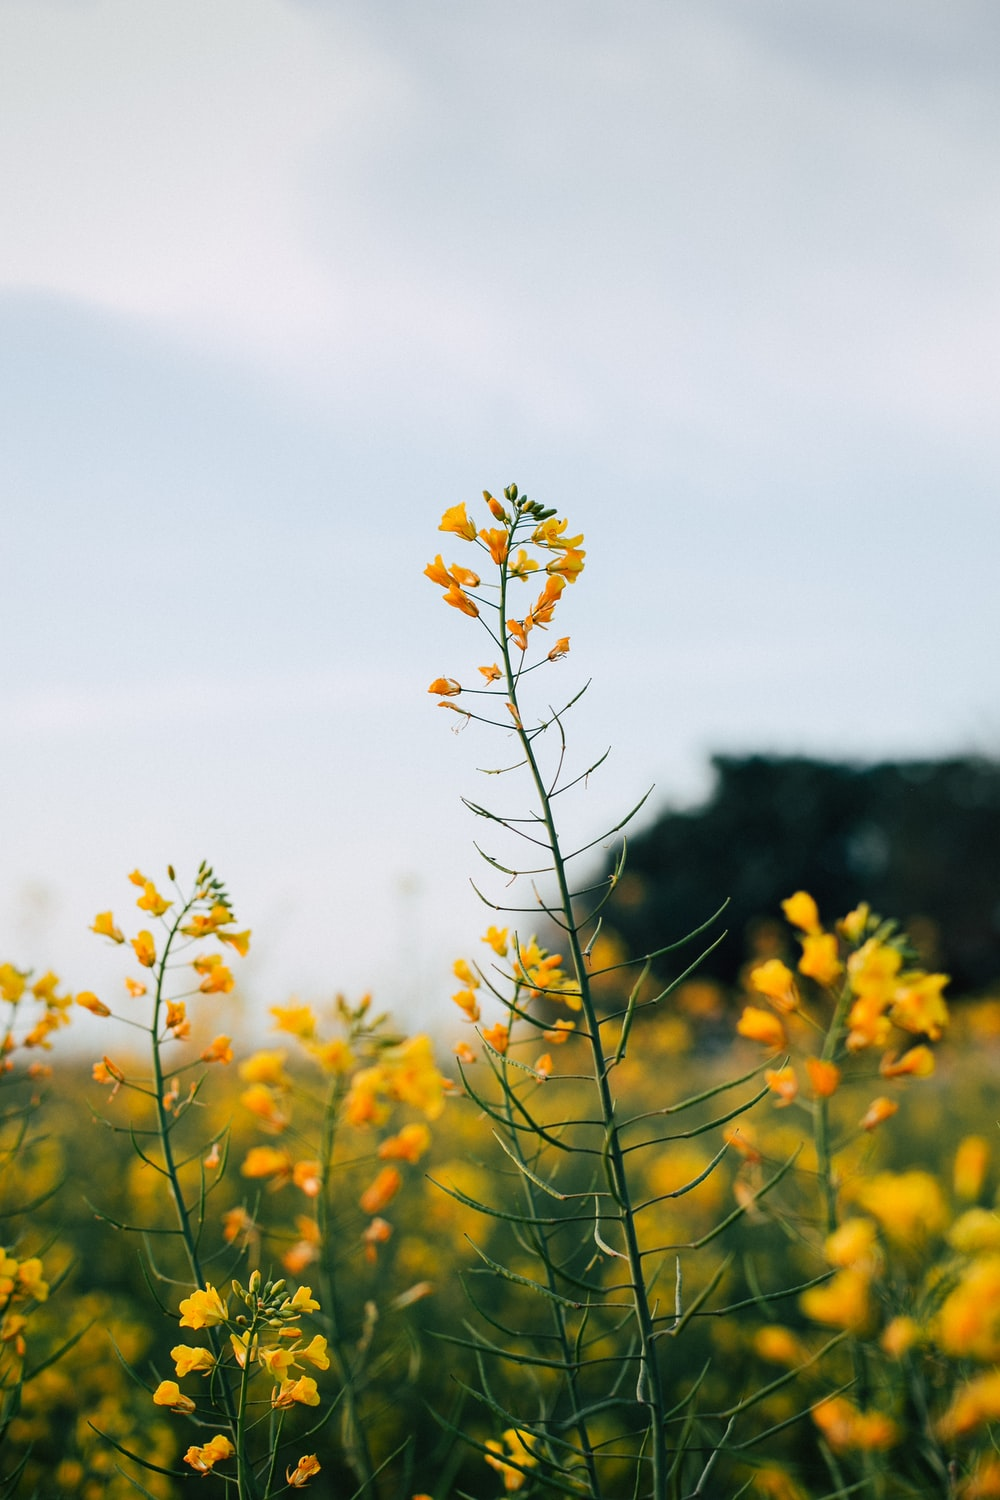 Yellow Flower Pictures Hq Download Free Images On Unsplash